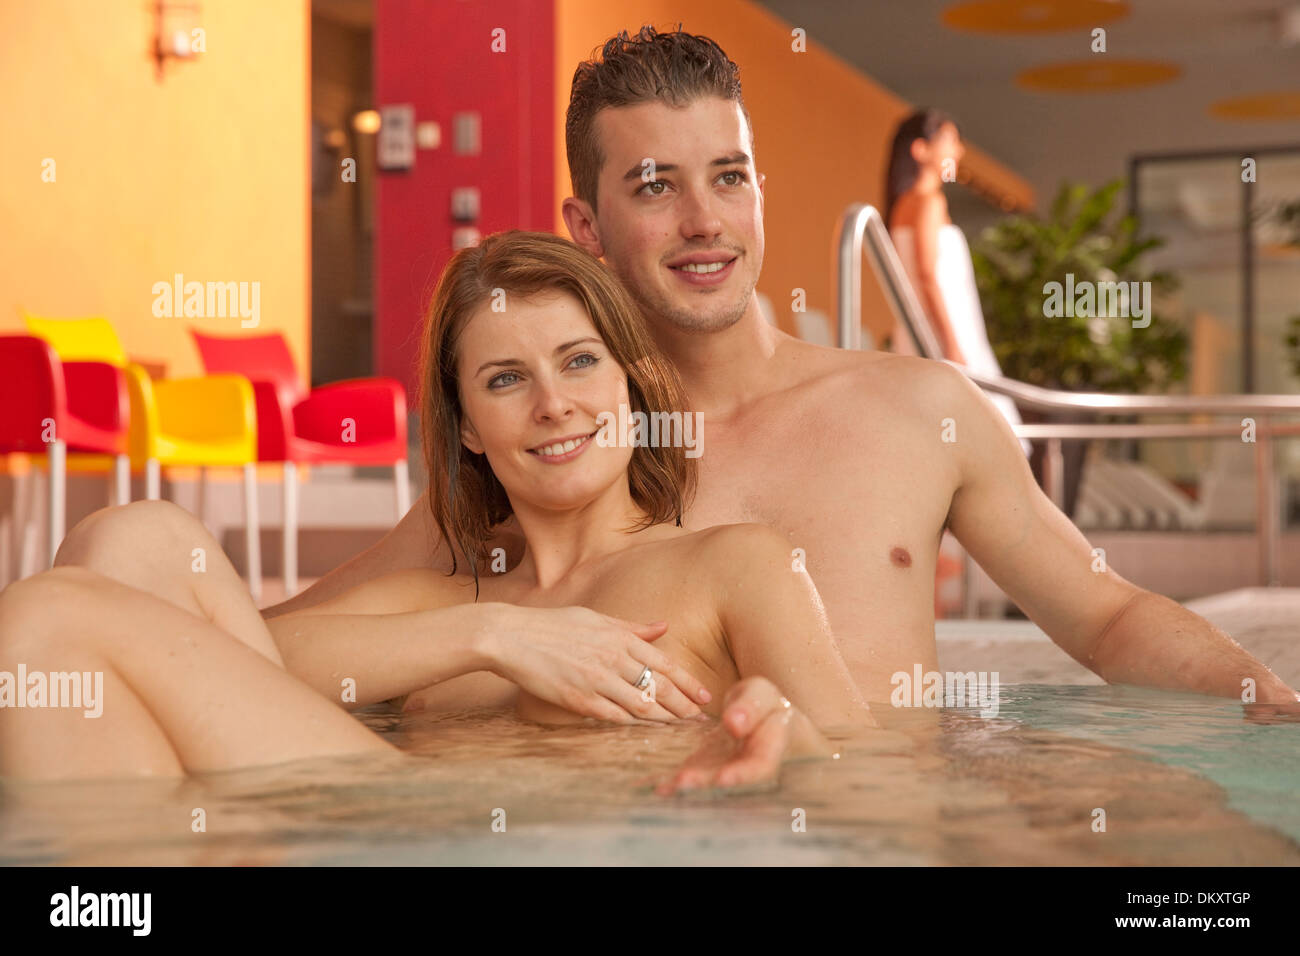 Opinion you couple gallery sport tgp water pity